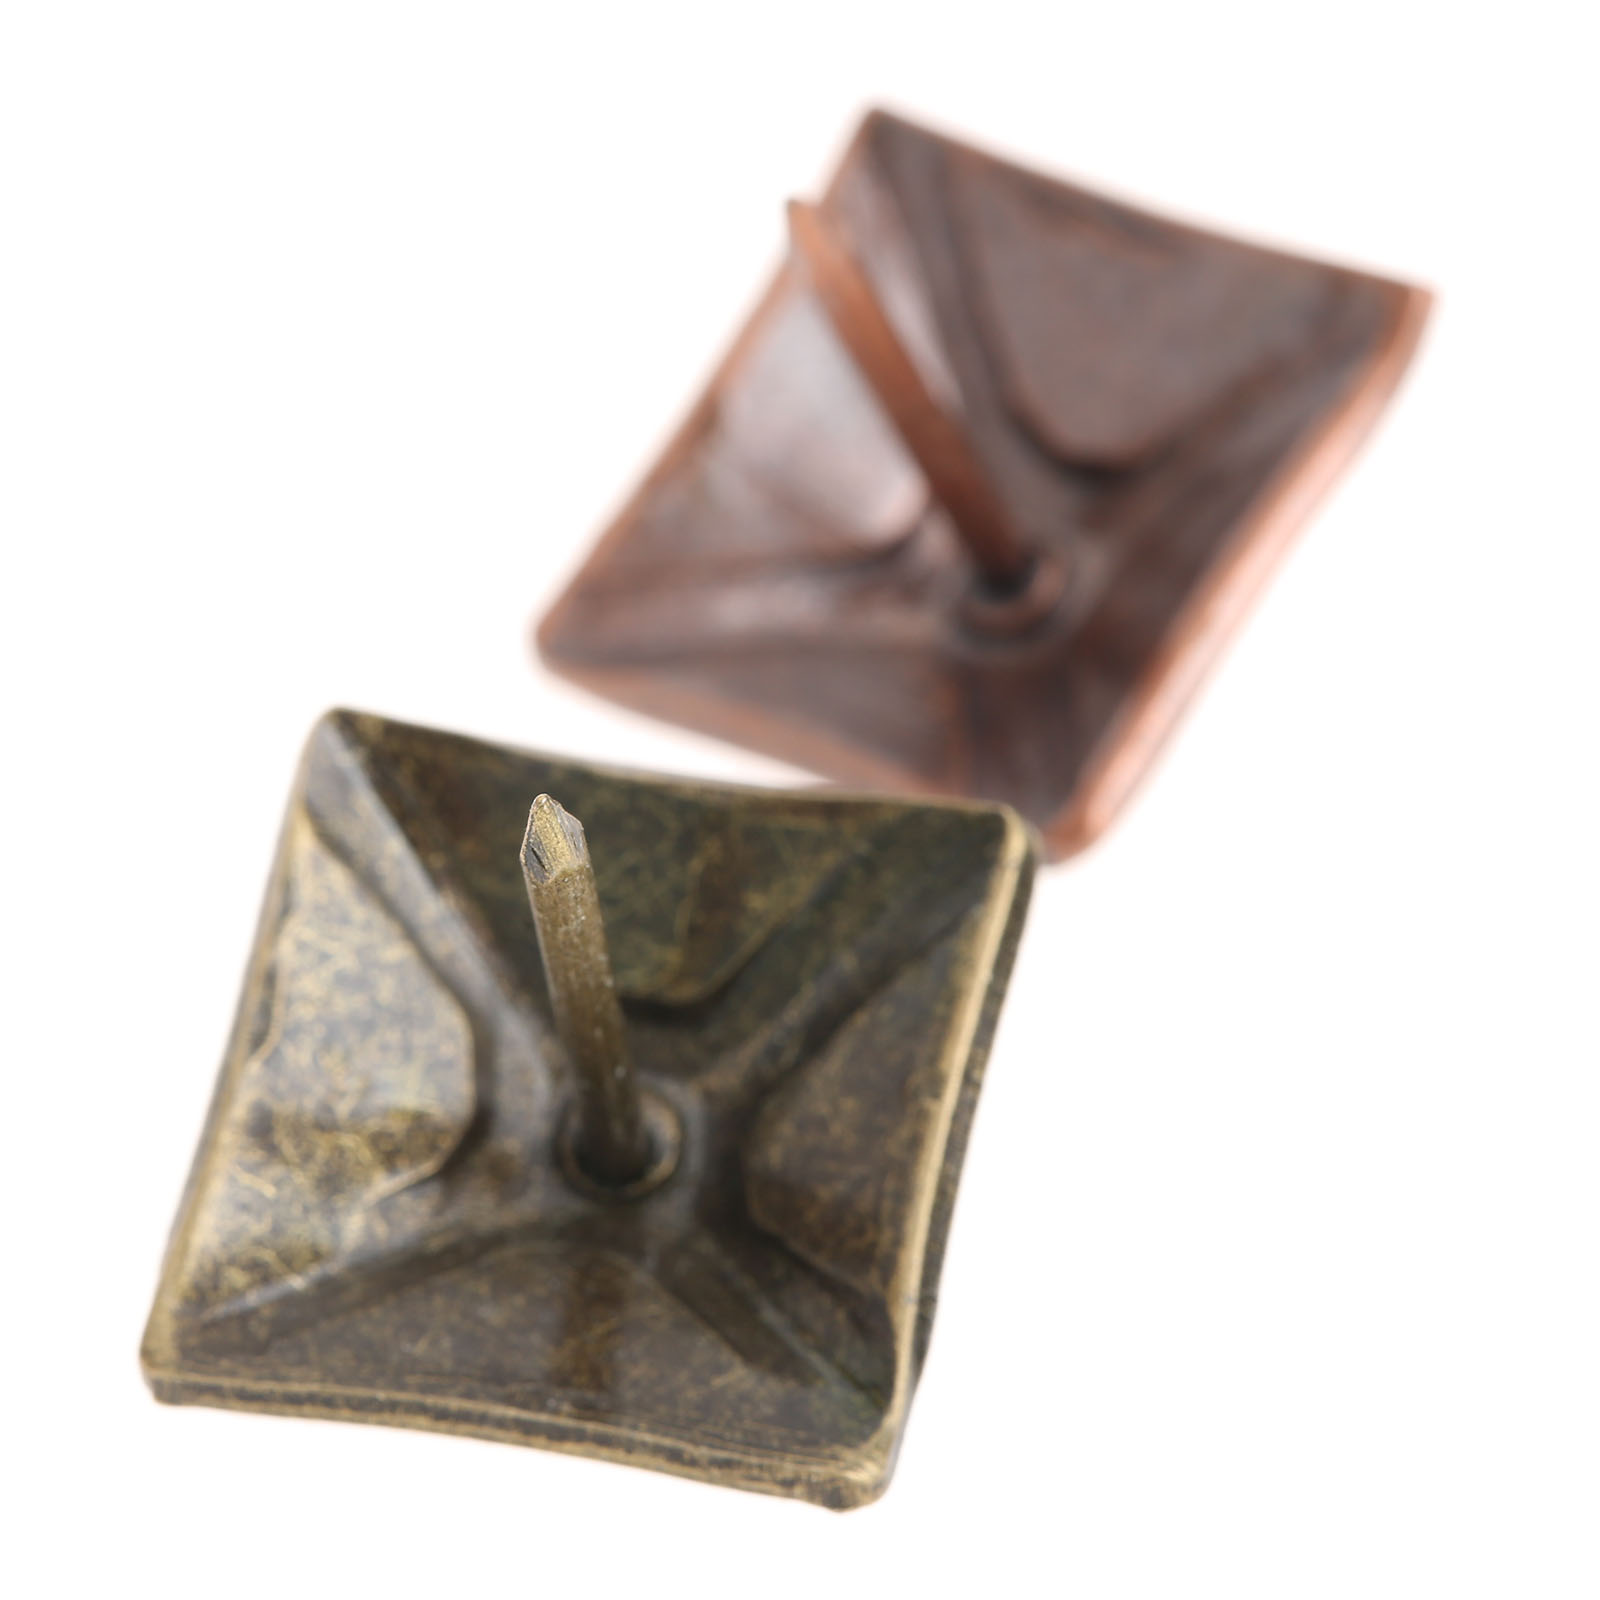 DRELD 50Pcs 19x21mm tachas Decorative Upholstery Tack Square Upholstery Nail Studs Furniture Home Decoration Hardware Fastener